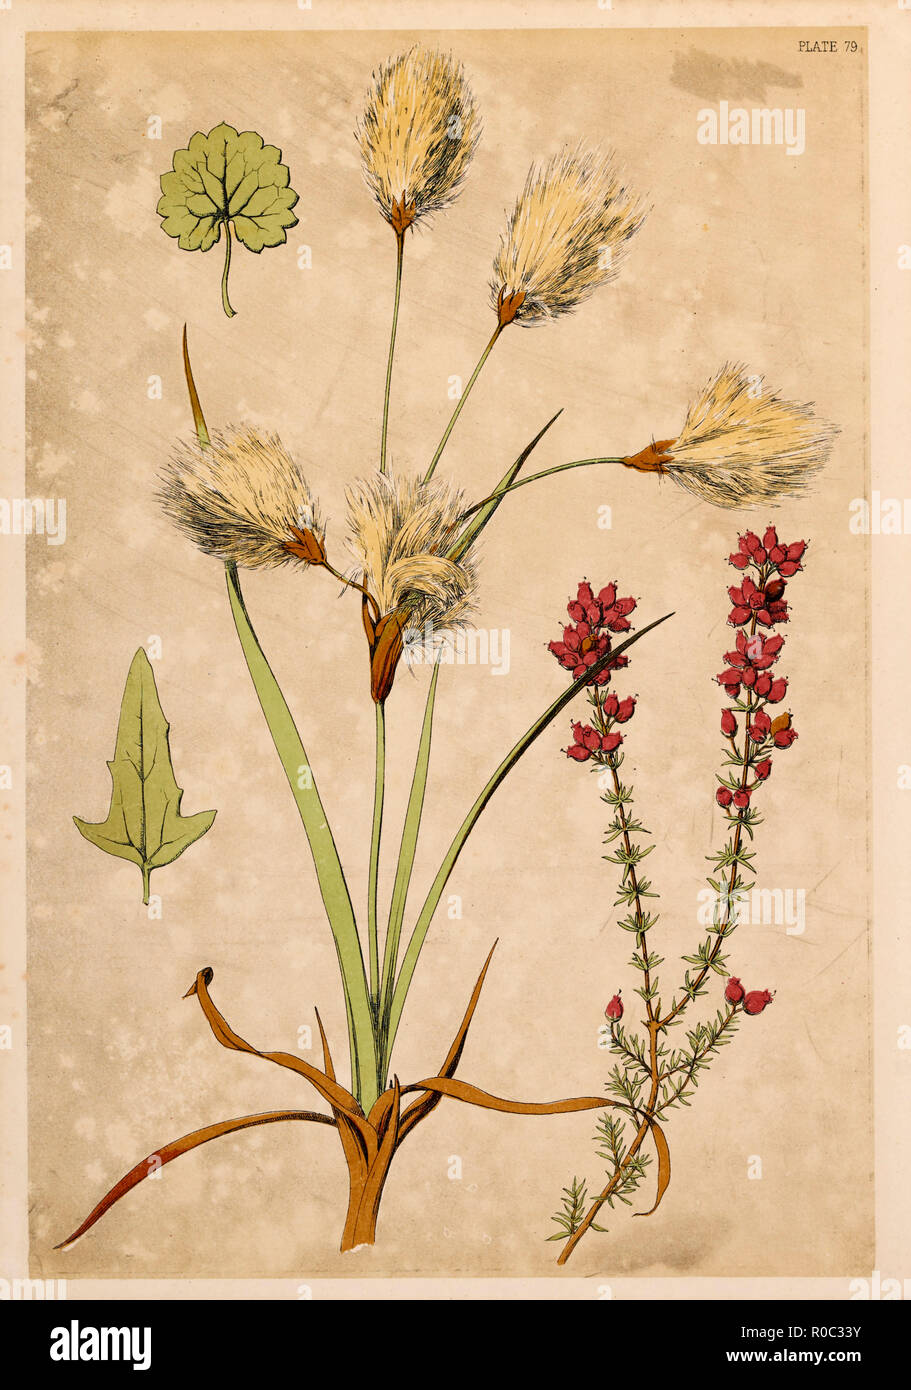 Cotton Grass and Fine Heath, Chromolithograph, 1868 - Stock Image